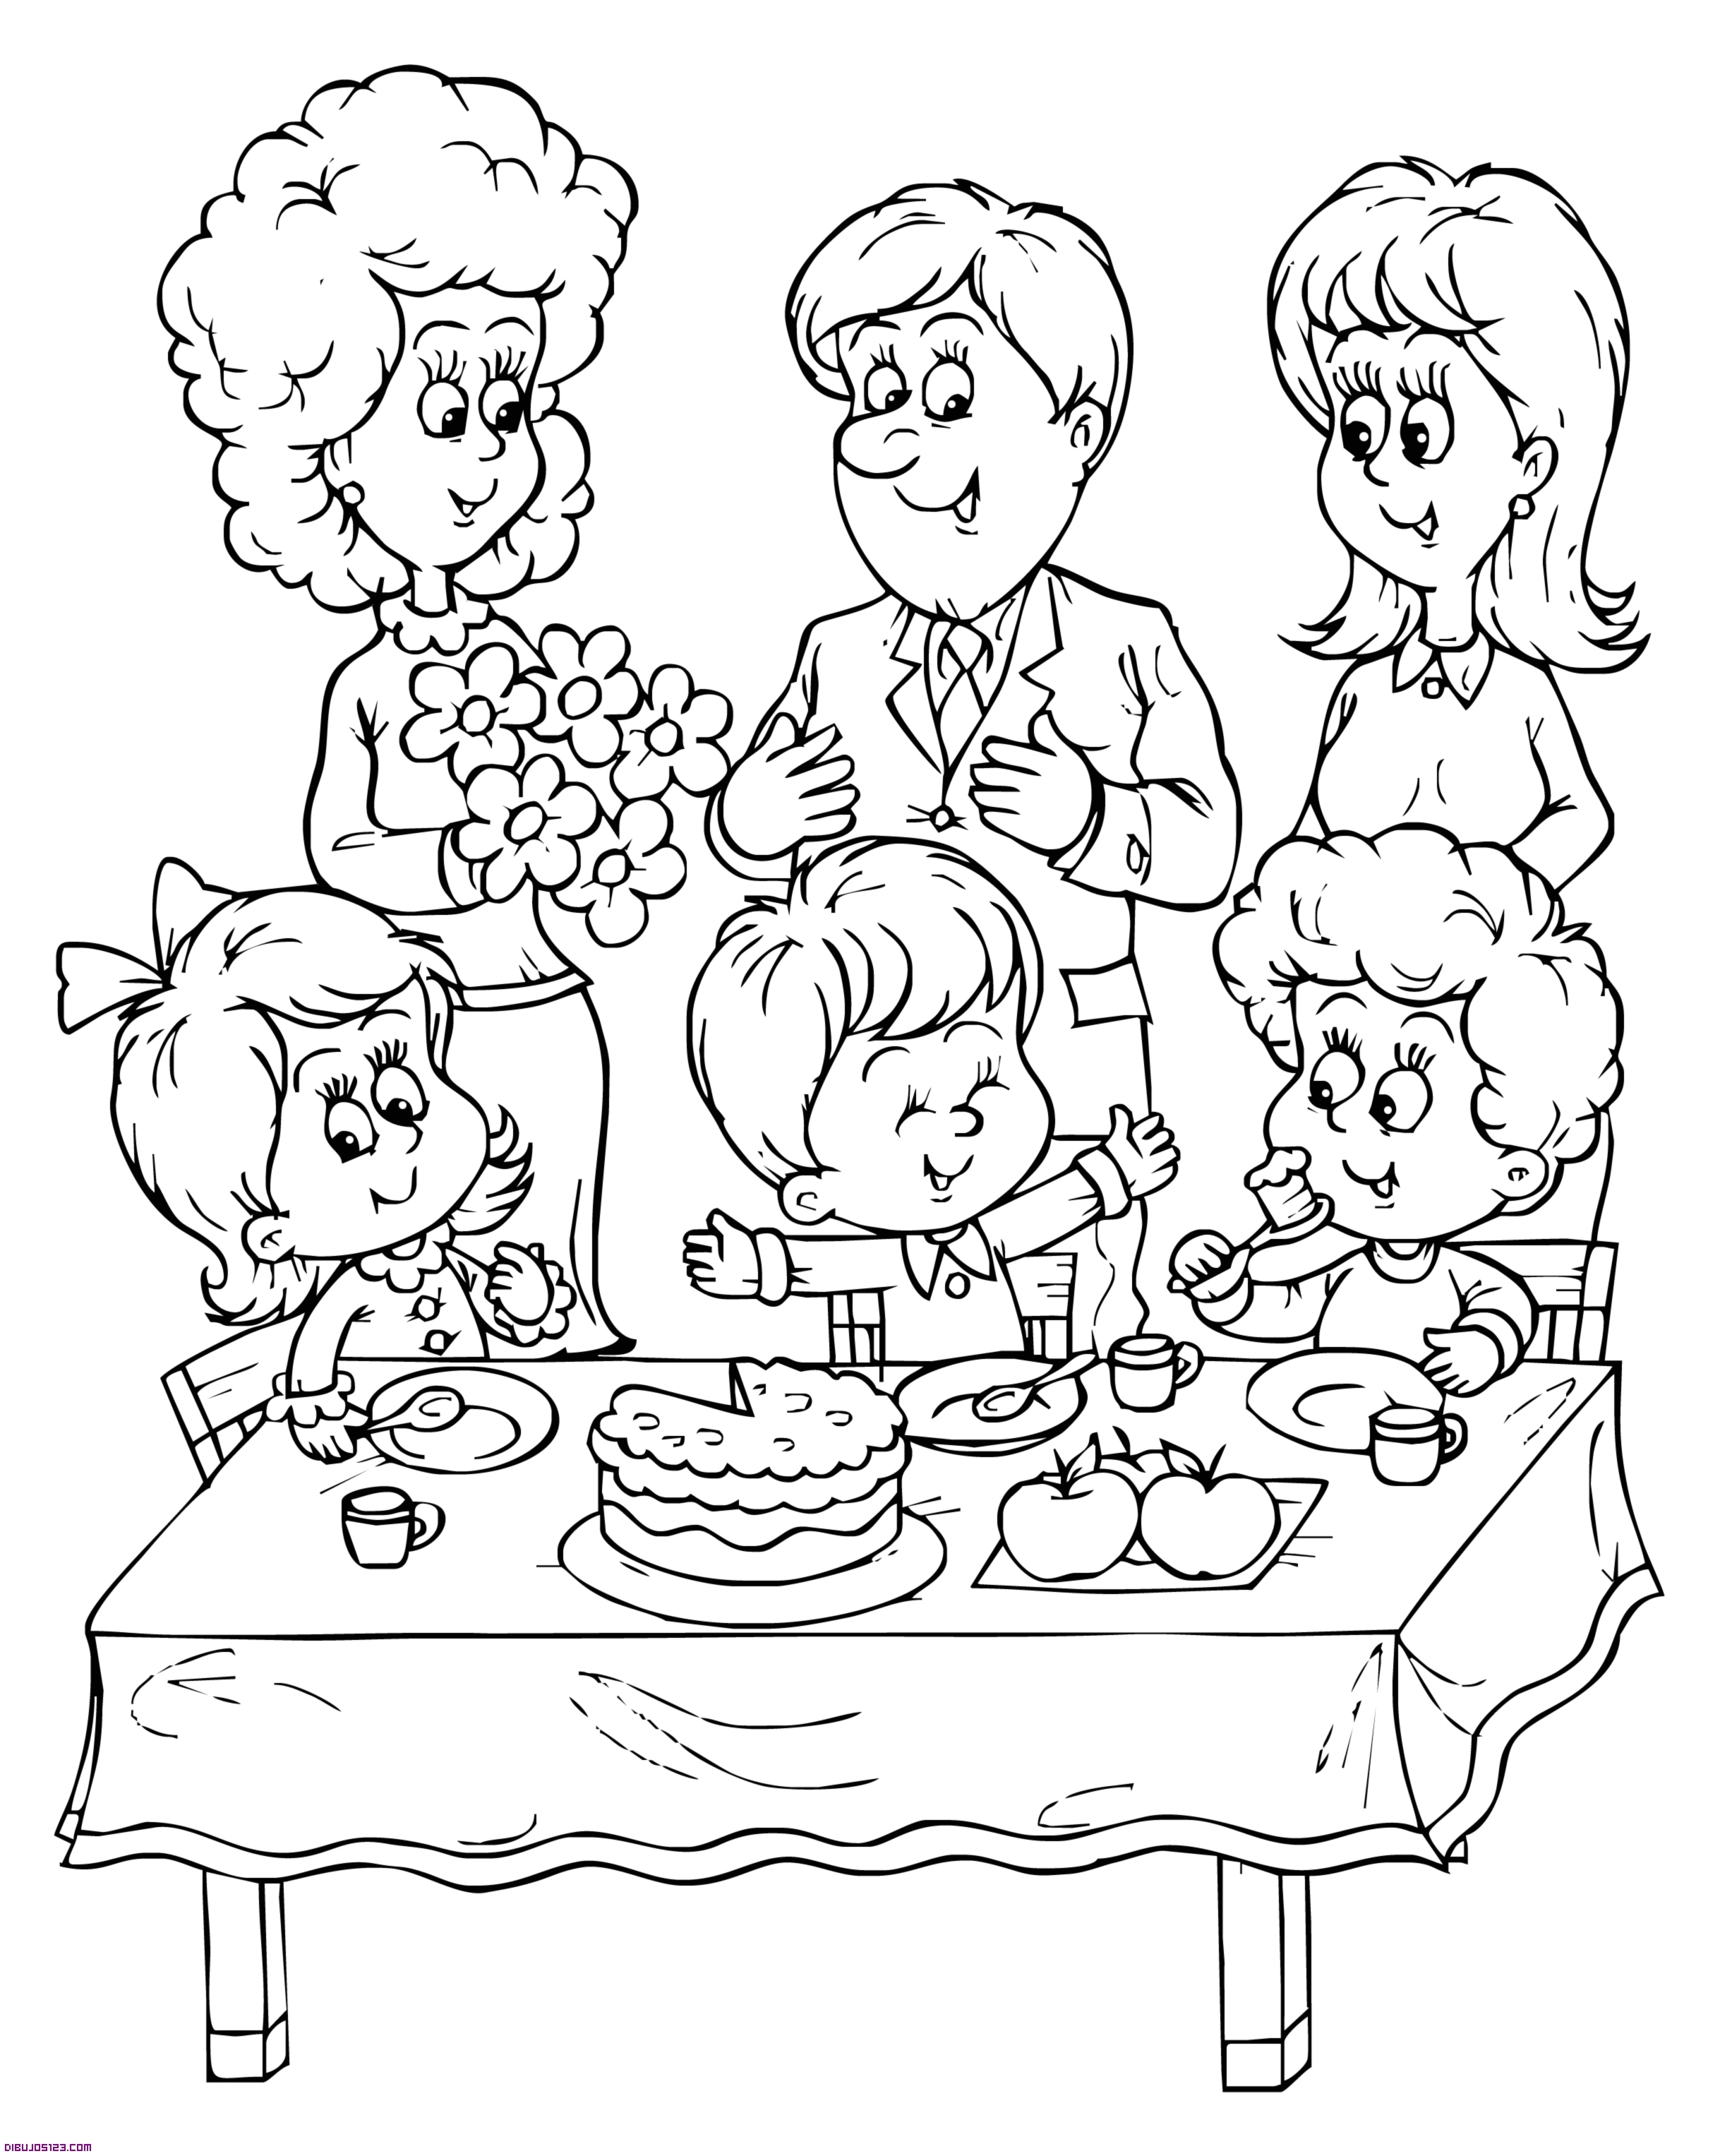 Coloring Cards besides Birthday Coloring Pages additionally Funny Monday Memes additionally Birthday Clip Art Black And White With Quotes in addition 938. on happy birthday videos for sister